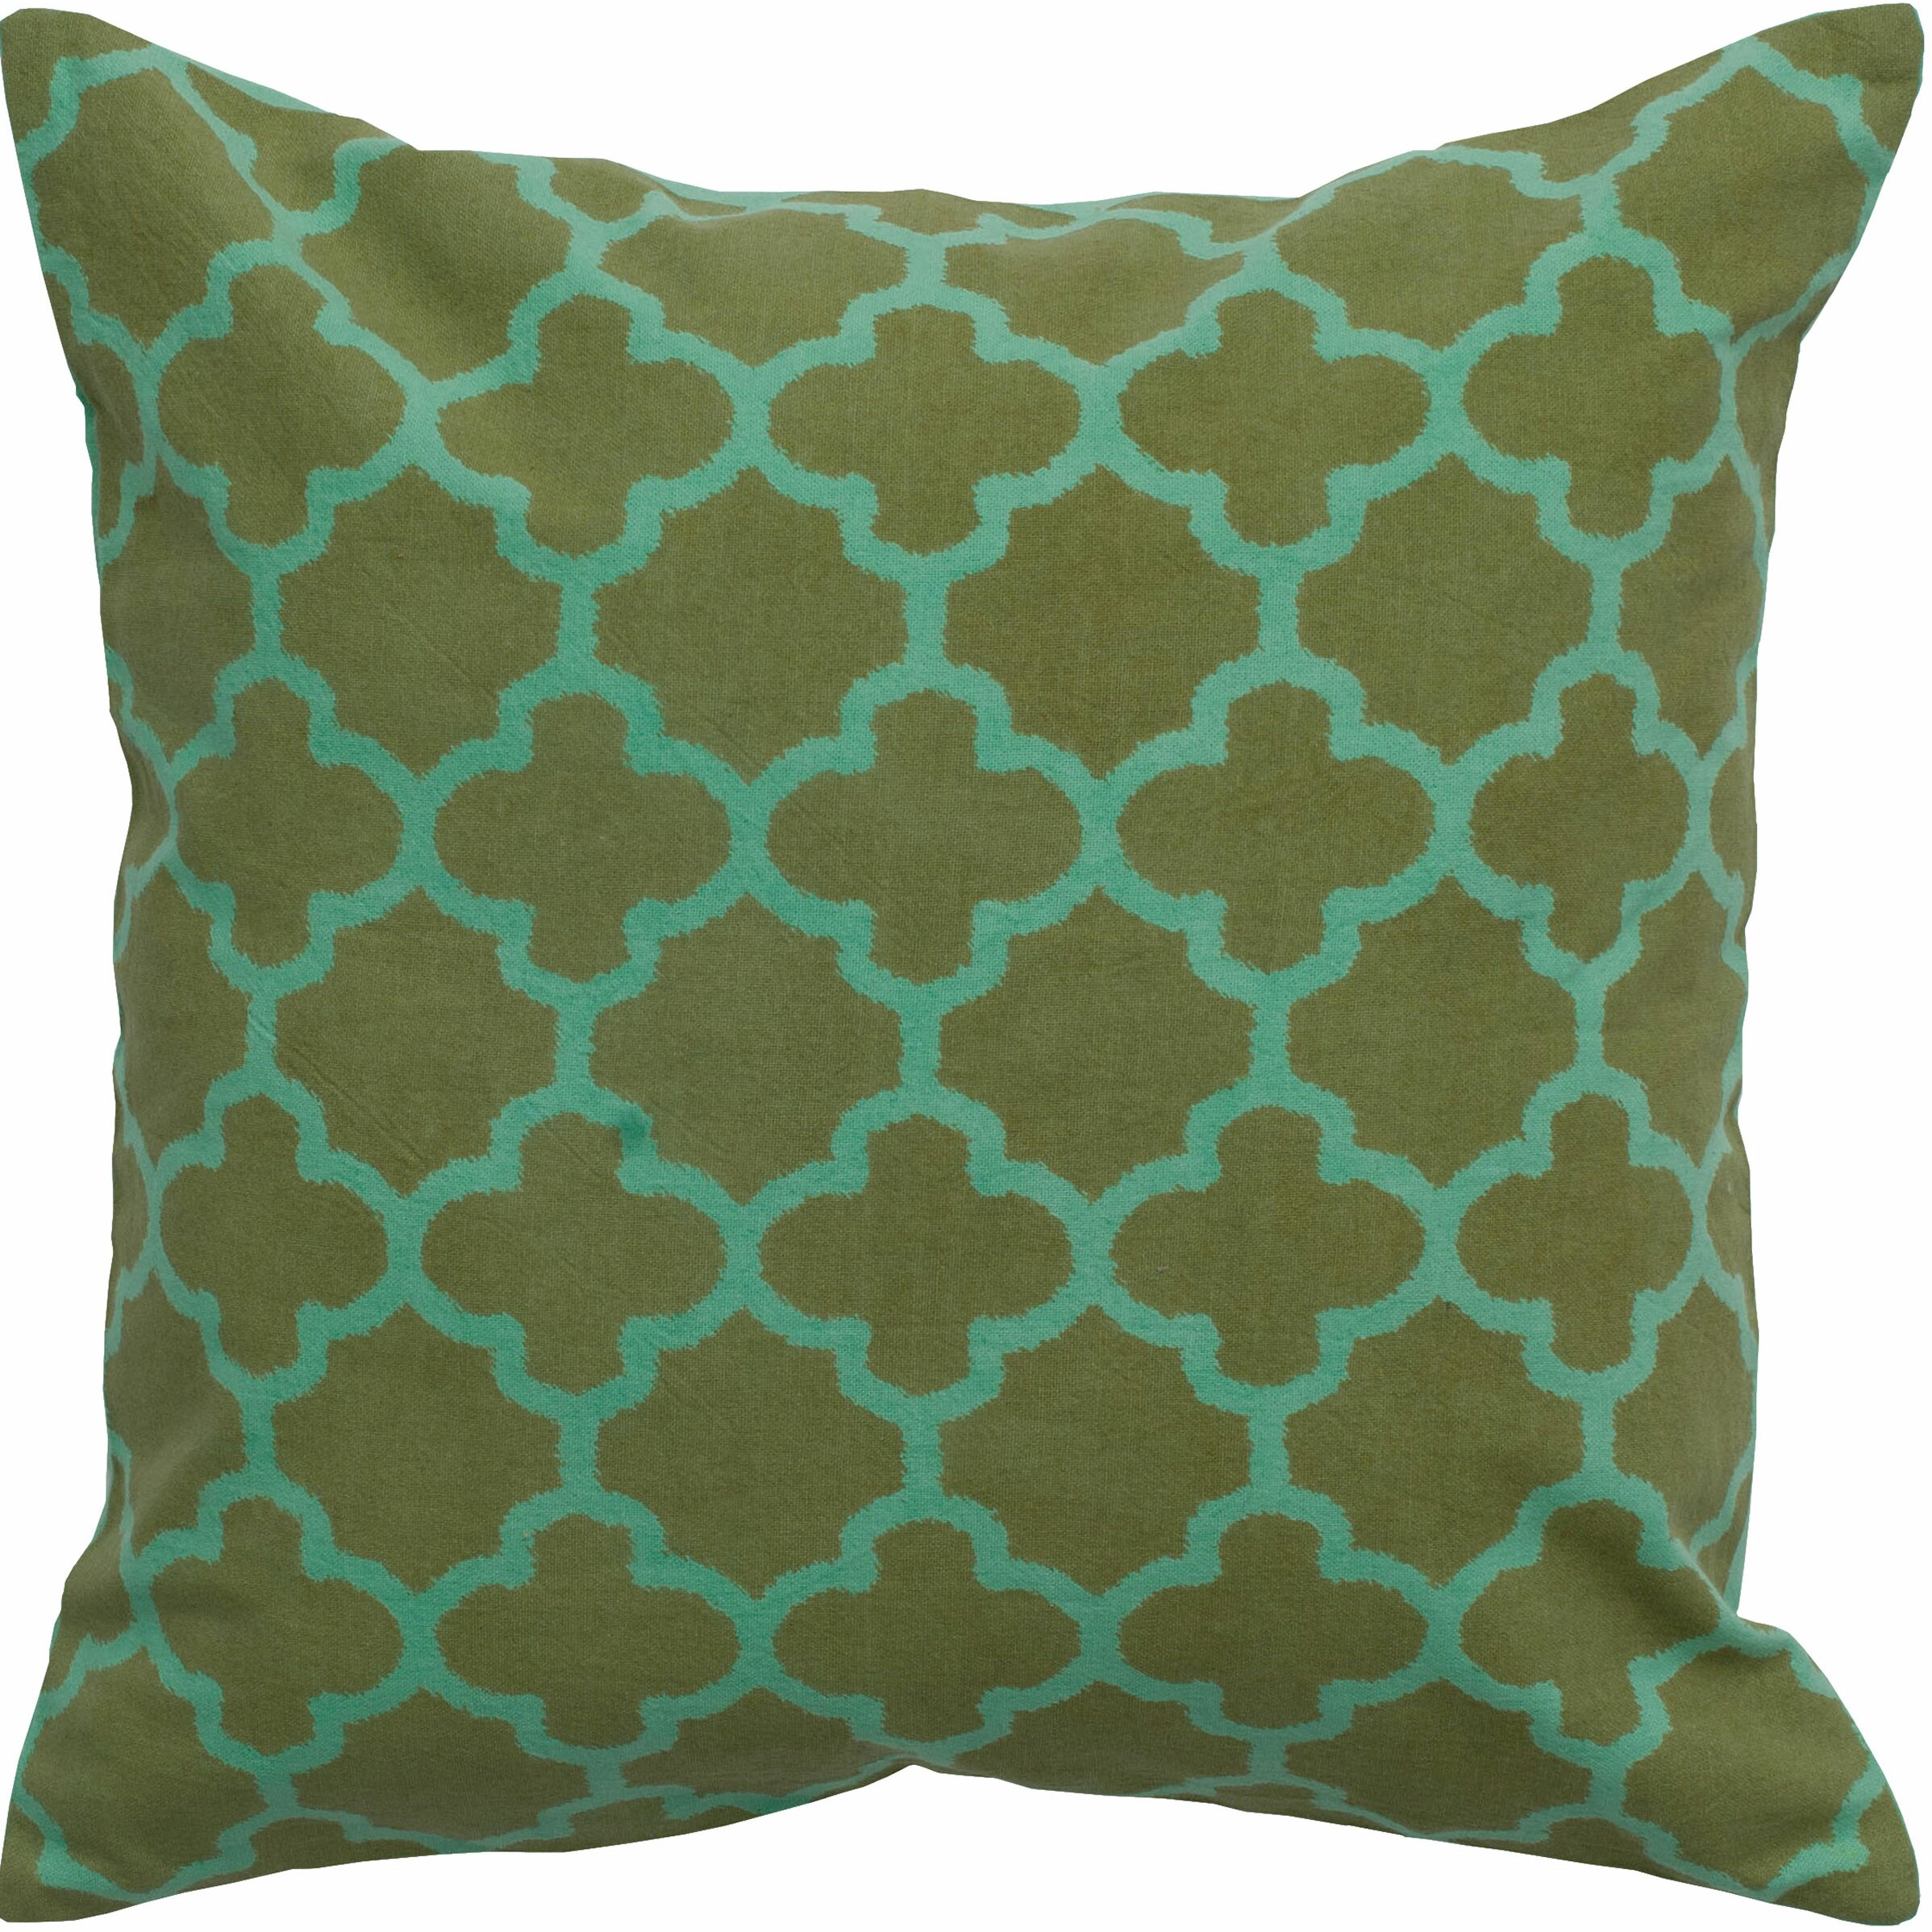 Throw Pillow Gallery : Varick Gallery Arbogast Print Cotton Throw Pillow & Reviews Wayfair